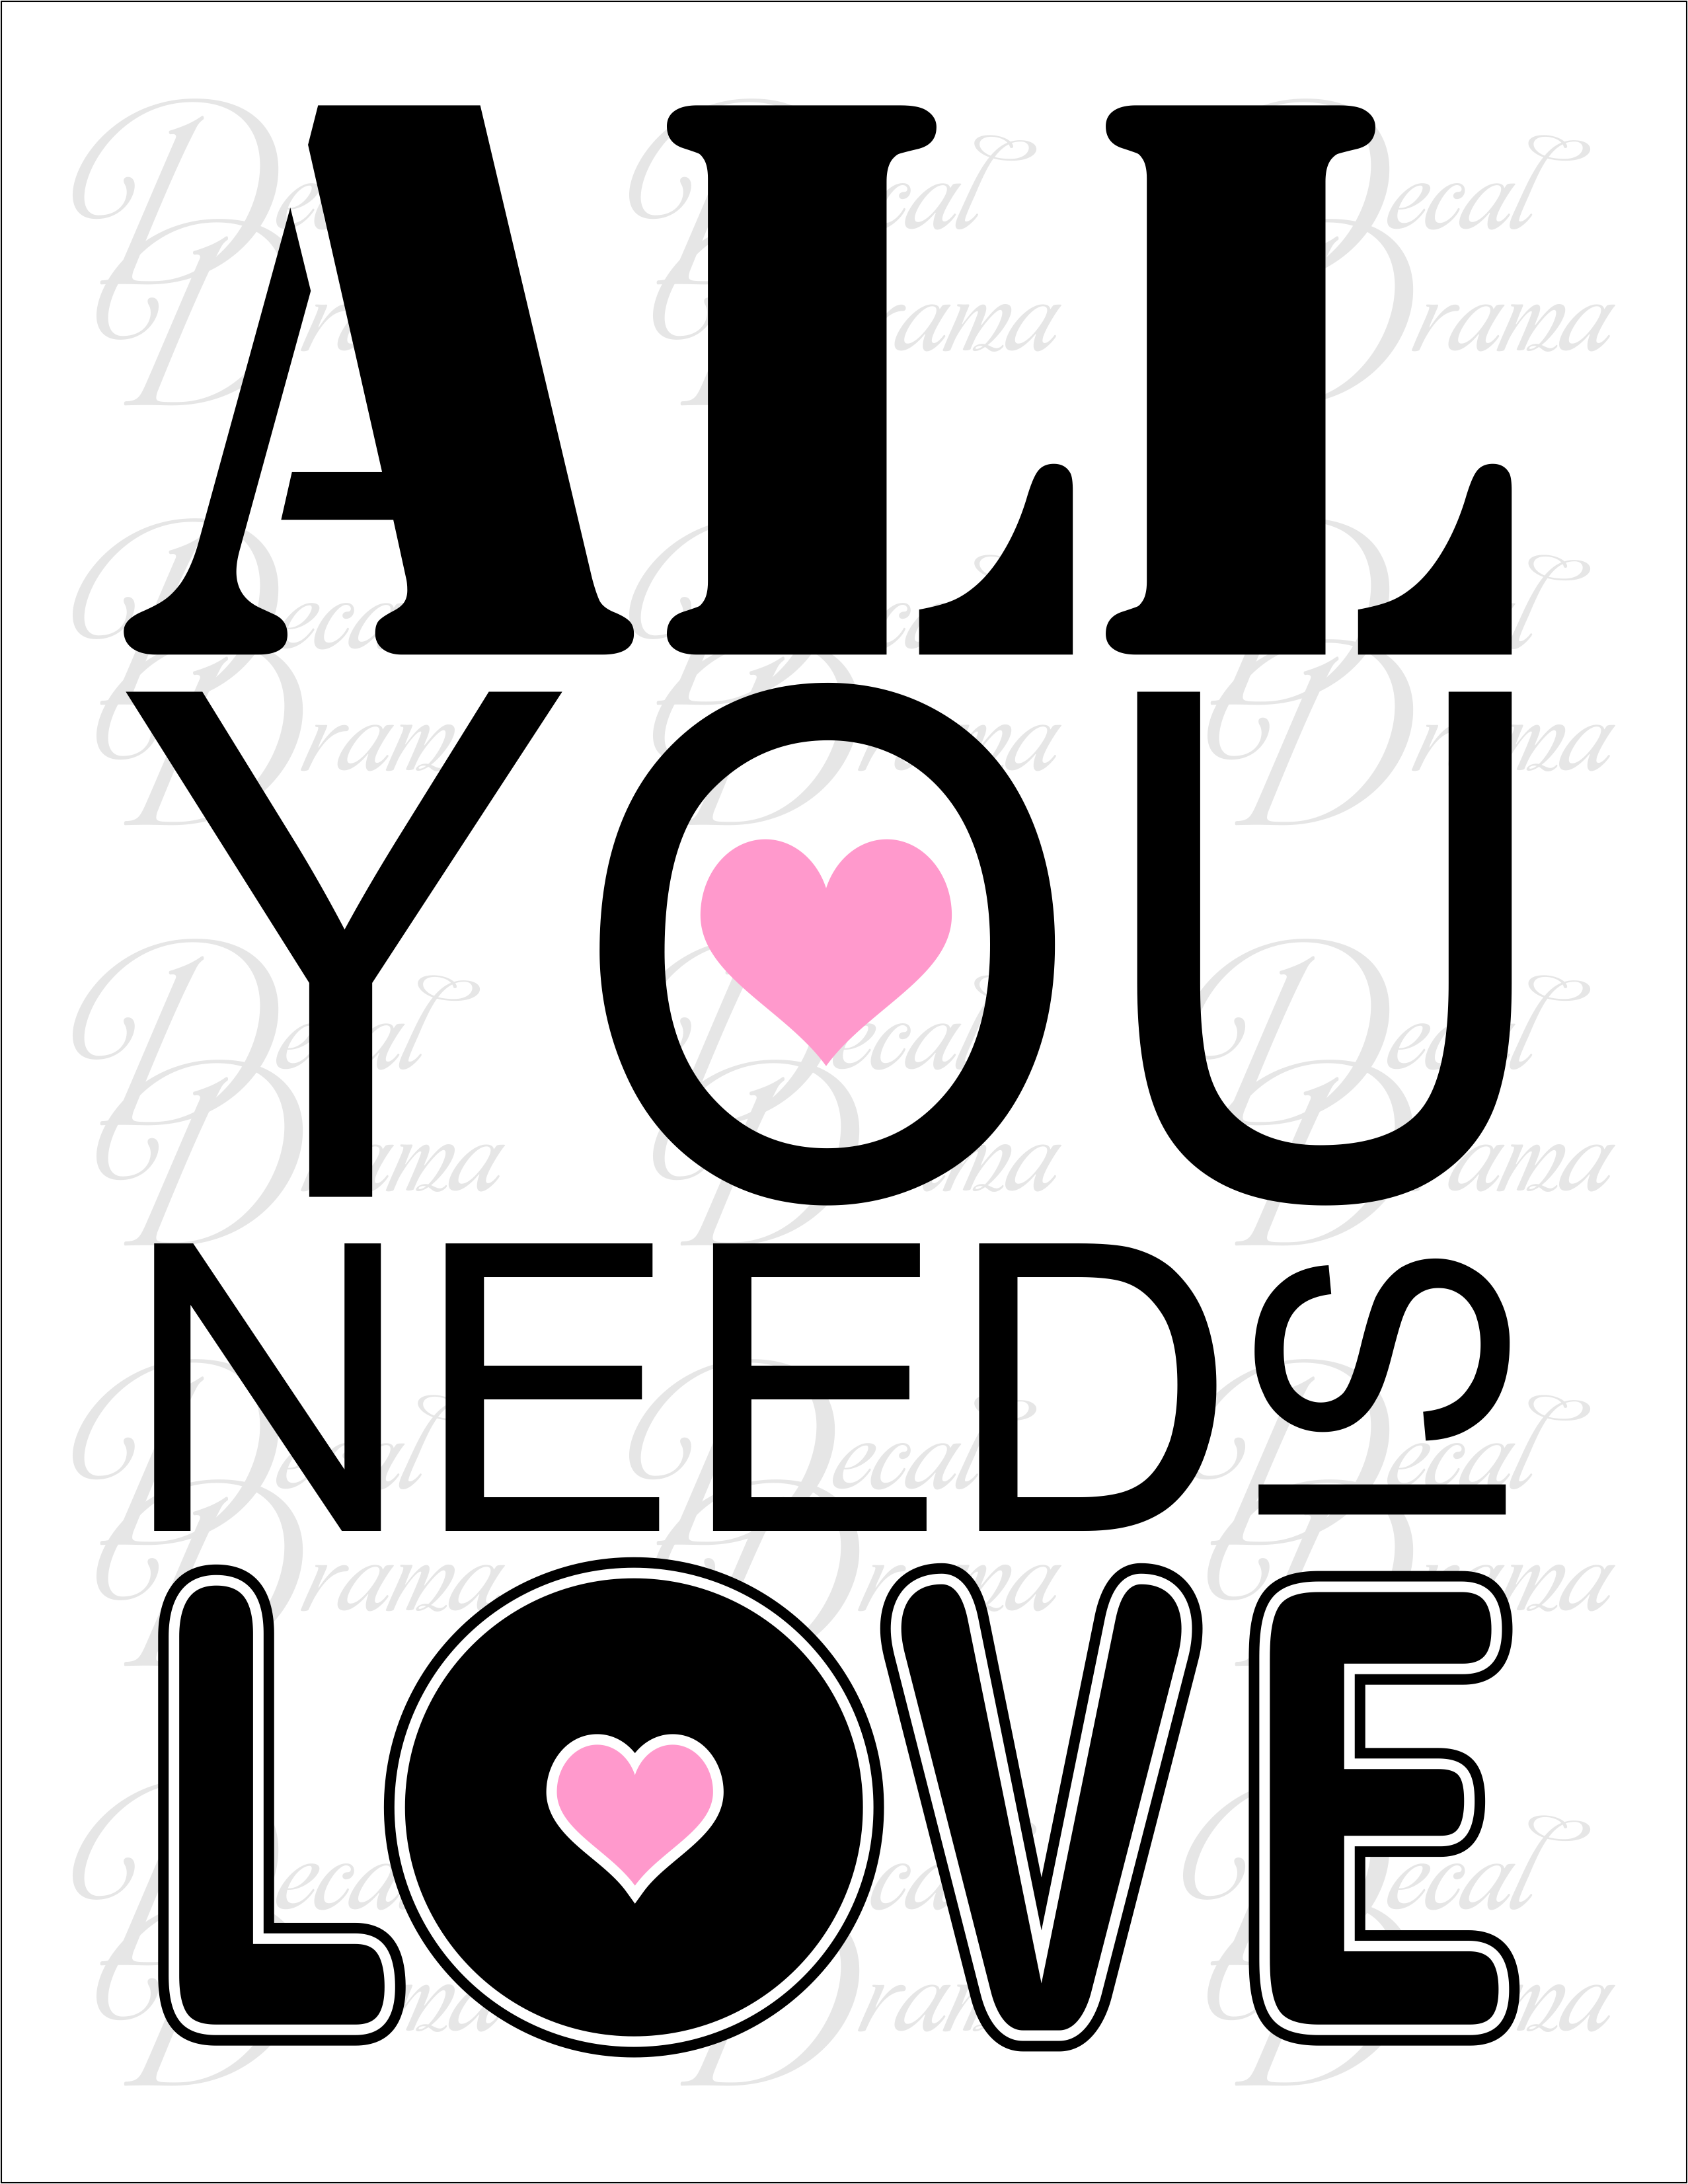 Decal drama all you need is love john lennon the beatles lyrics decal drama all you need is love john lennon the beatles lyrics buycottarizona